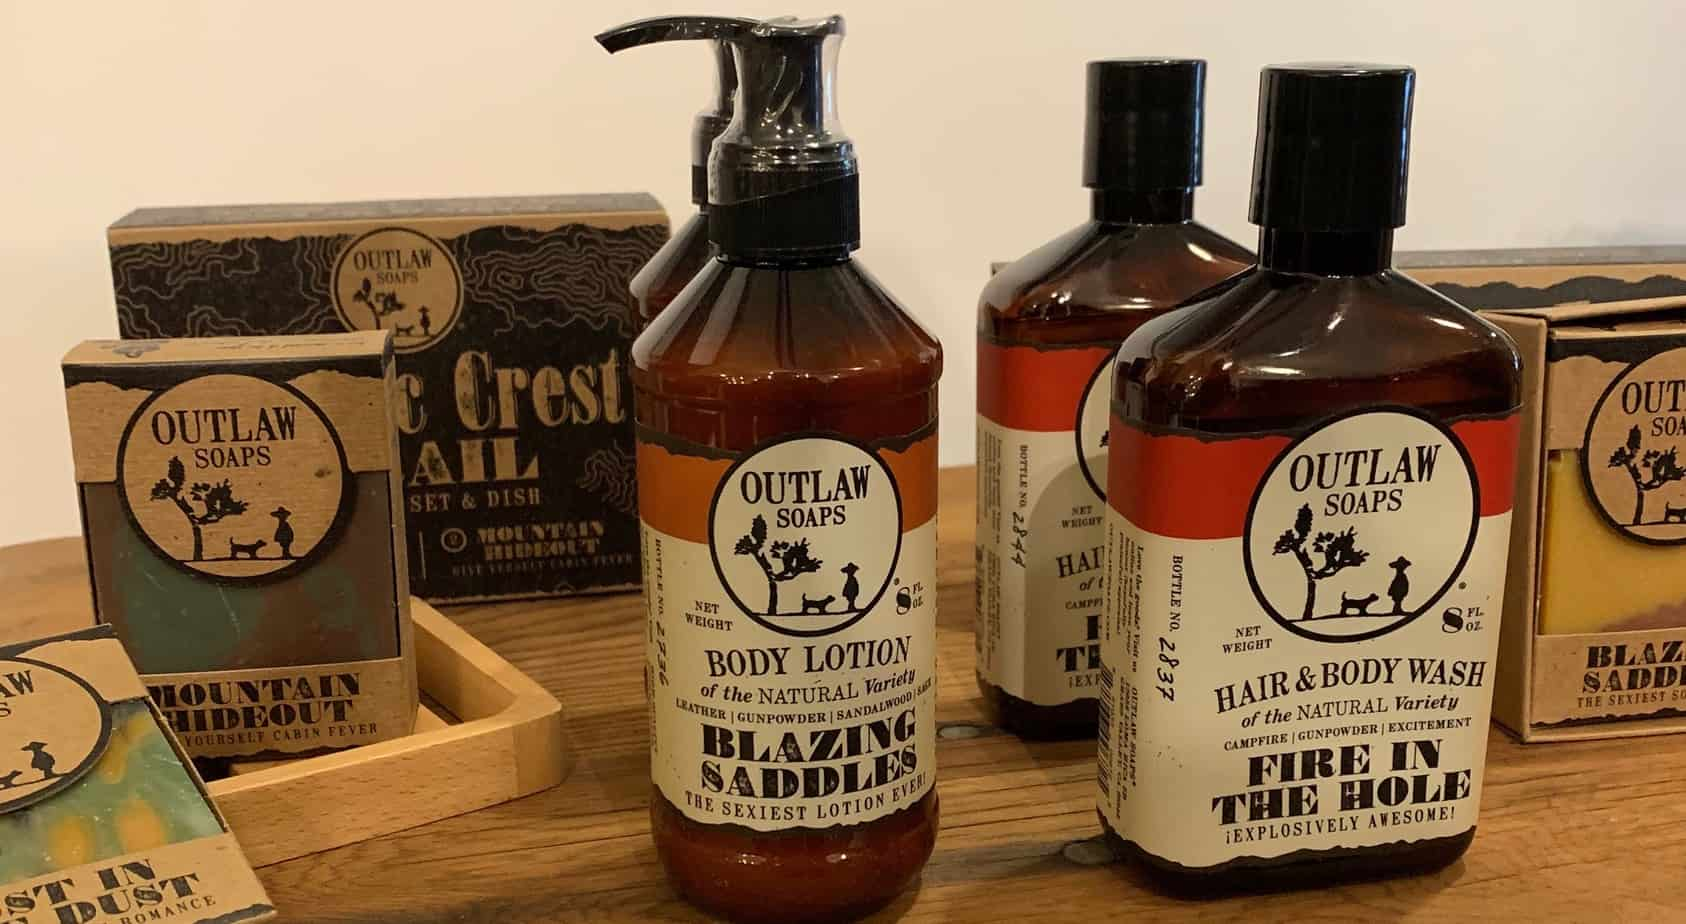 Skincare products by Outlaw Soap Co.